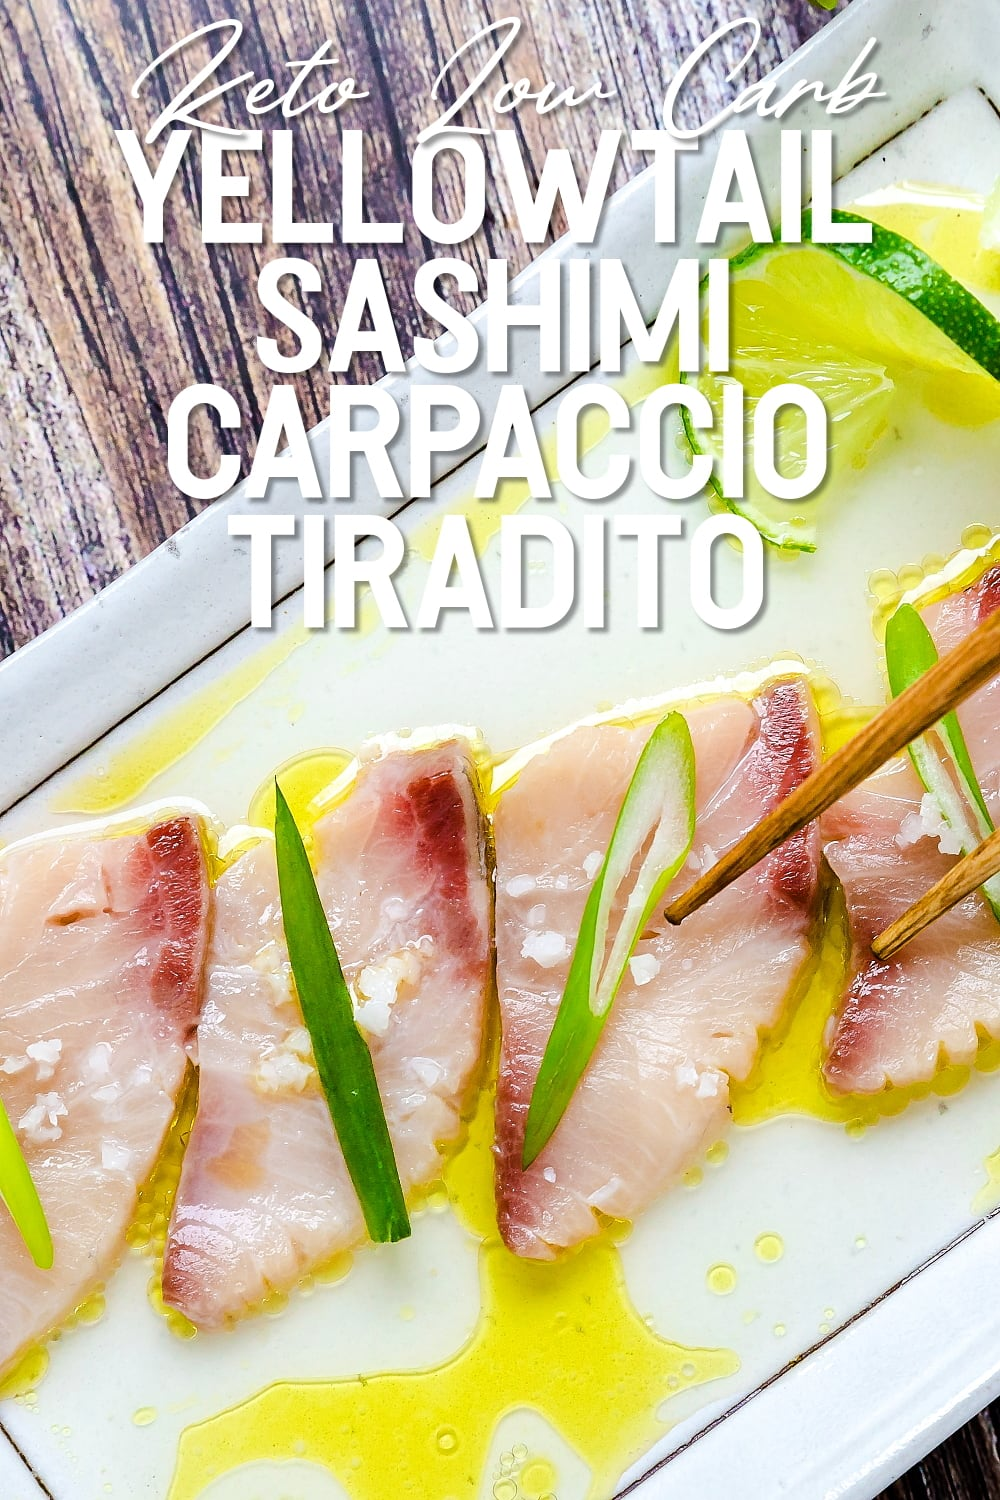 Peruvian style Yellowtail Sashimi Carpaccio Tiradito served on a white plate being picked up by chopsticks